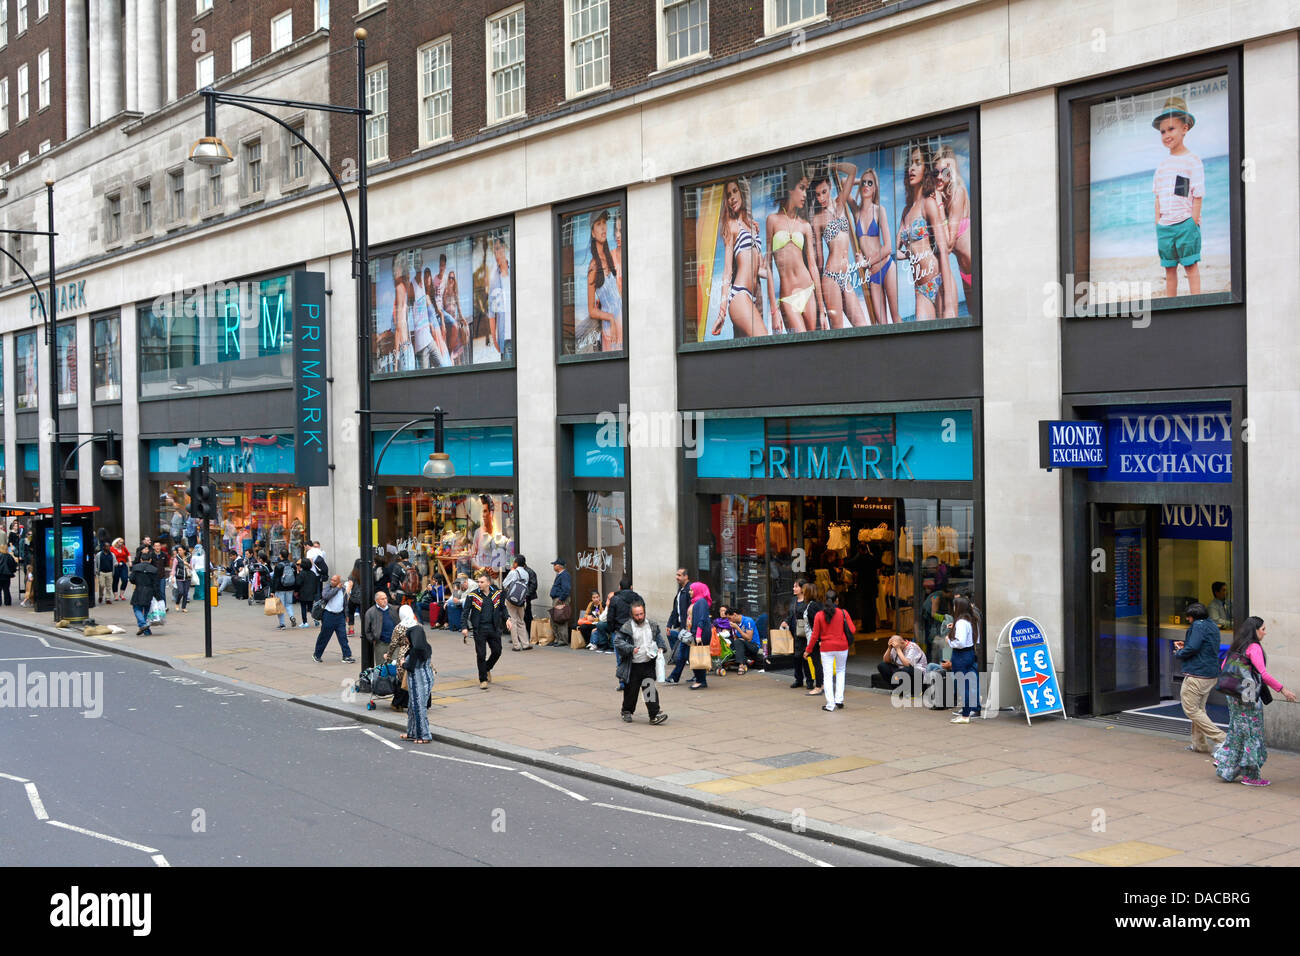 primark clothing store in oxford street london stock photo 58050372 alamy. Black Bedroom Furniture Sets. Home Design Ideas